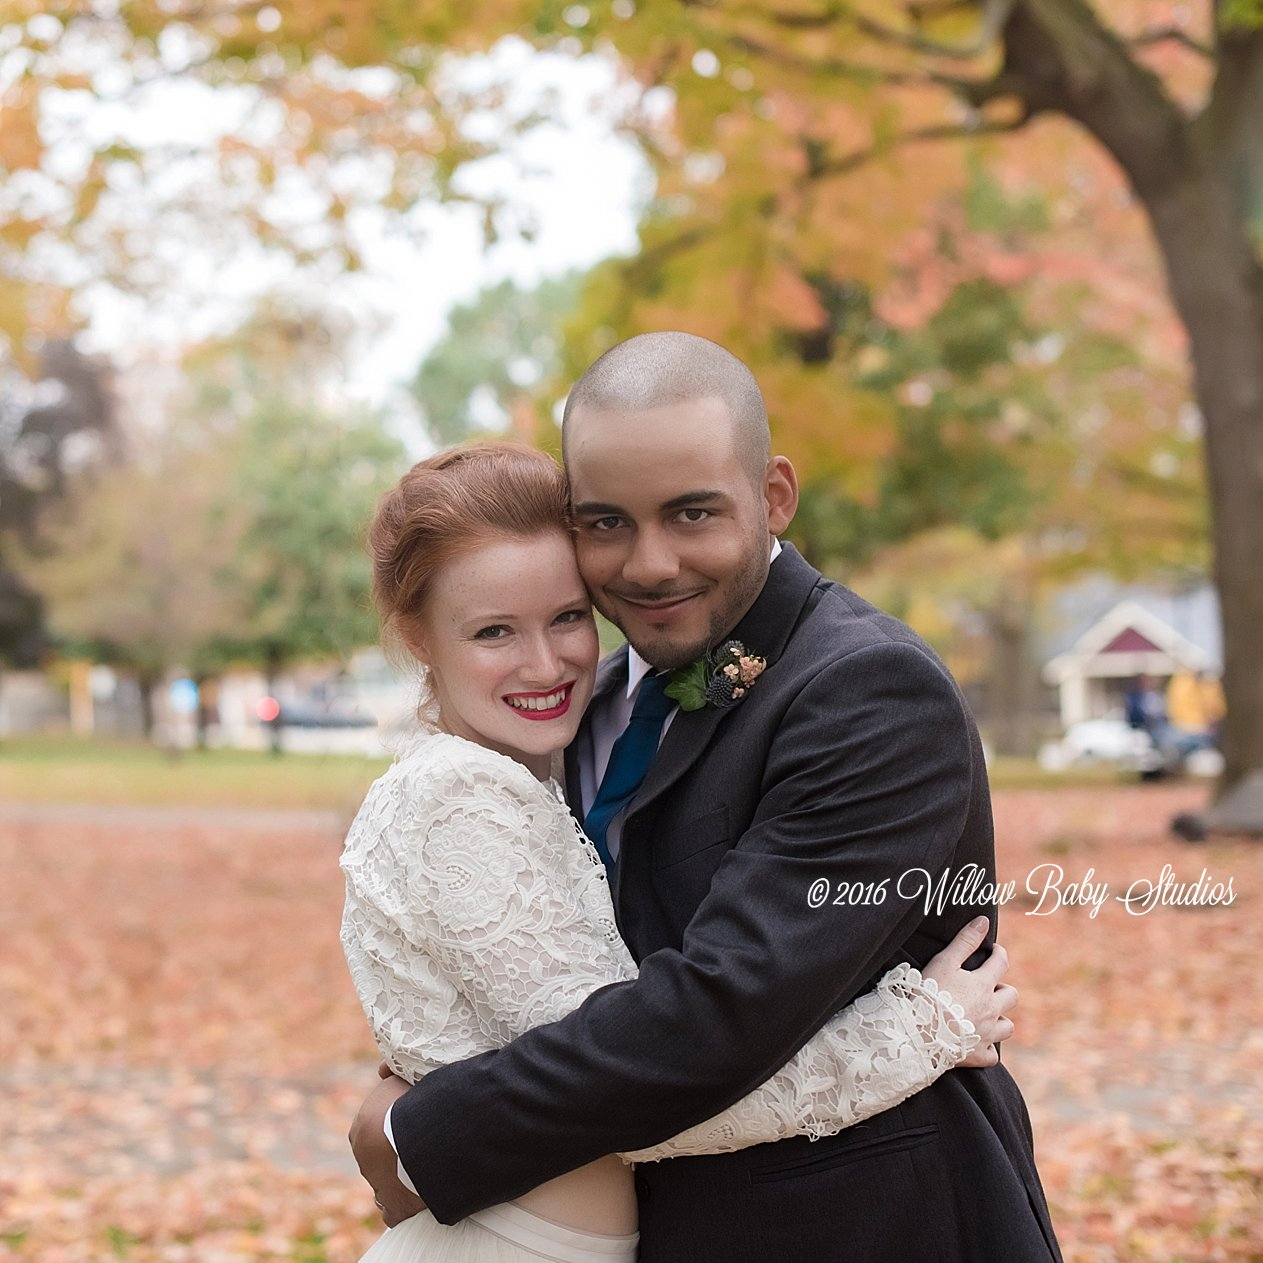 husband and wife embrace on their fall wedding day amidst the leaves